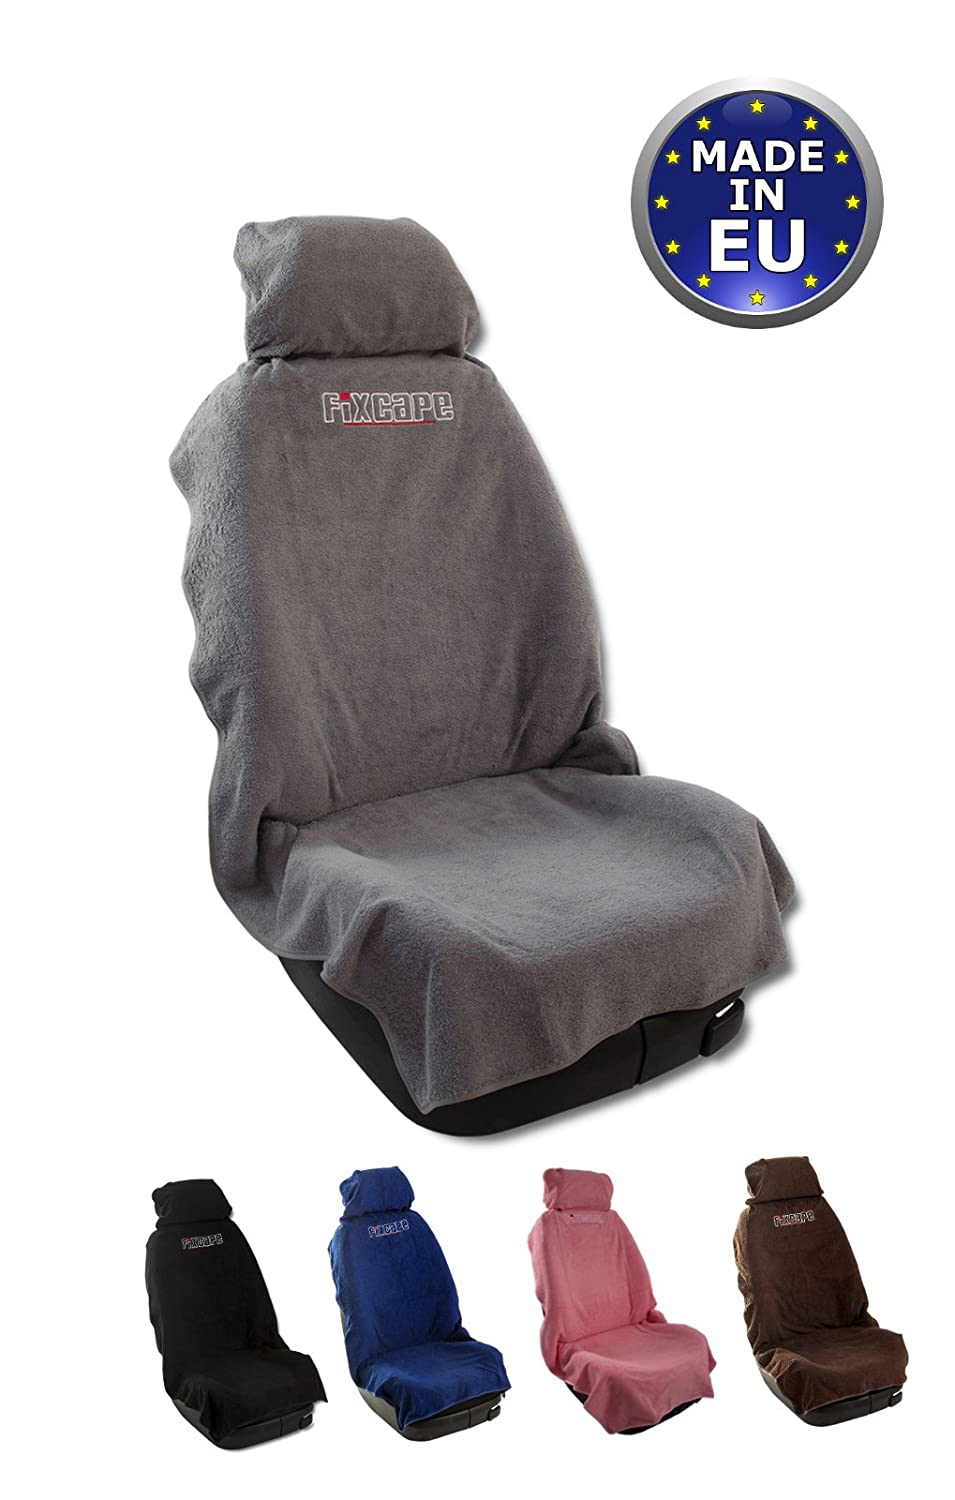 universal high quality car seat covers fixcape front car seat cover protection car seat saver